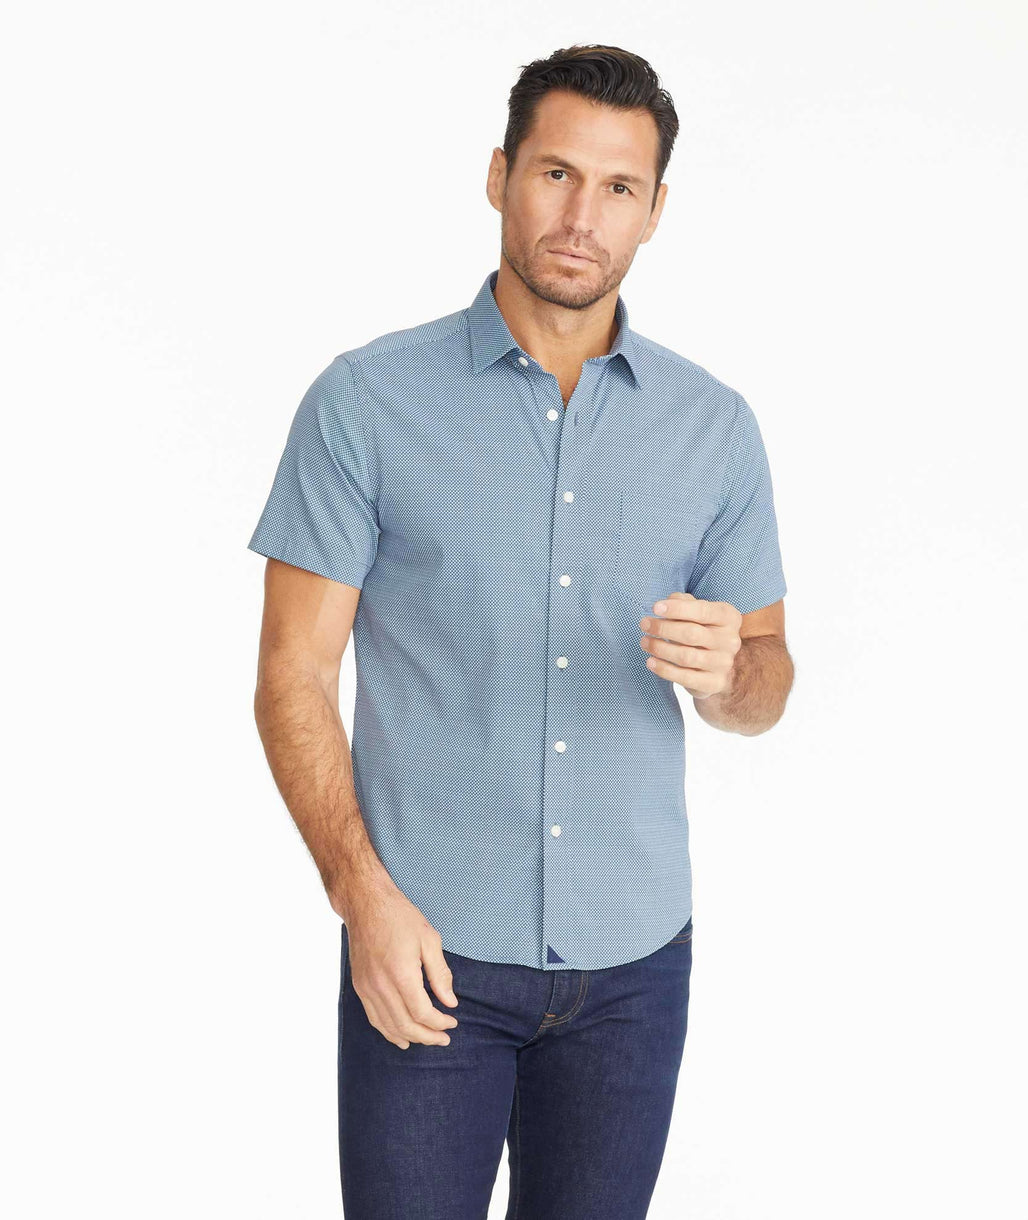 Model wearing a Wrinkle-Free Performance Benham Shirt